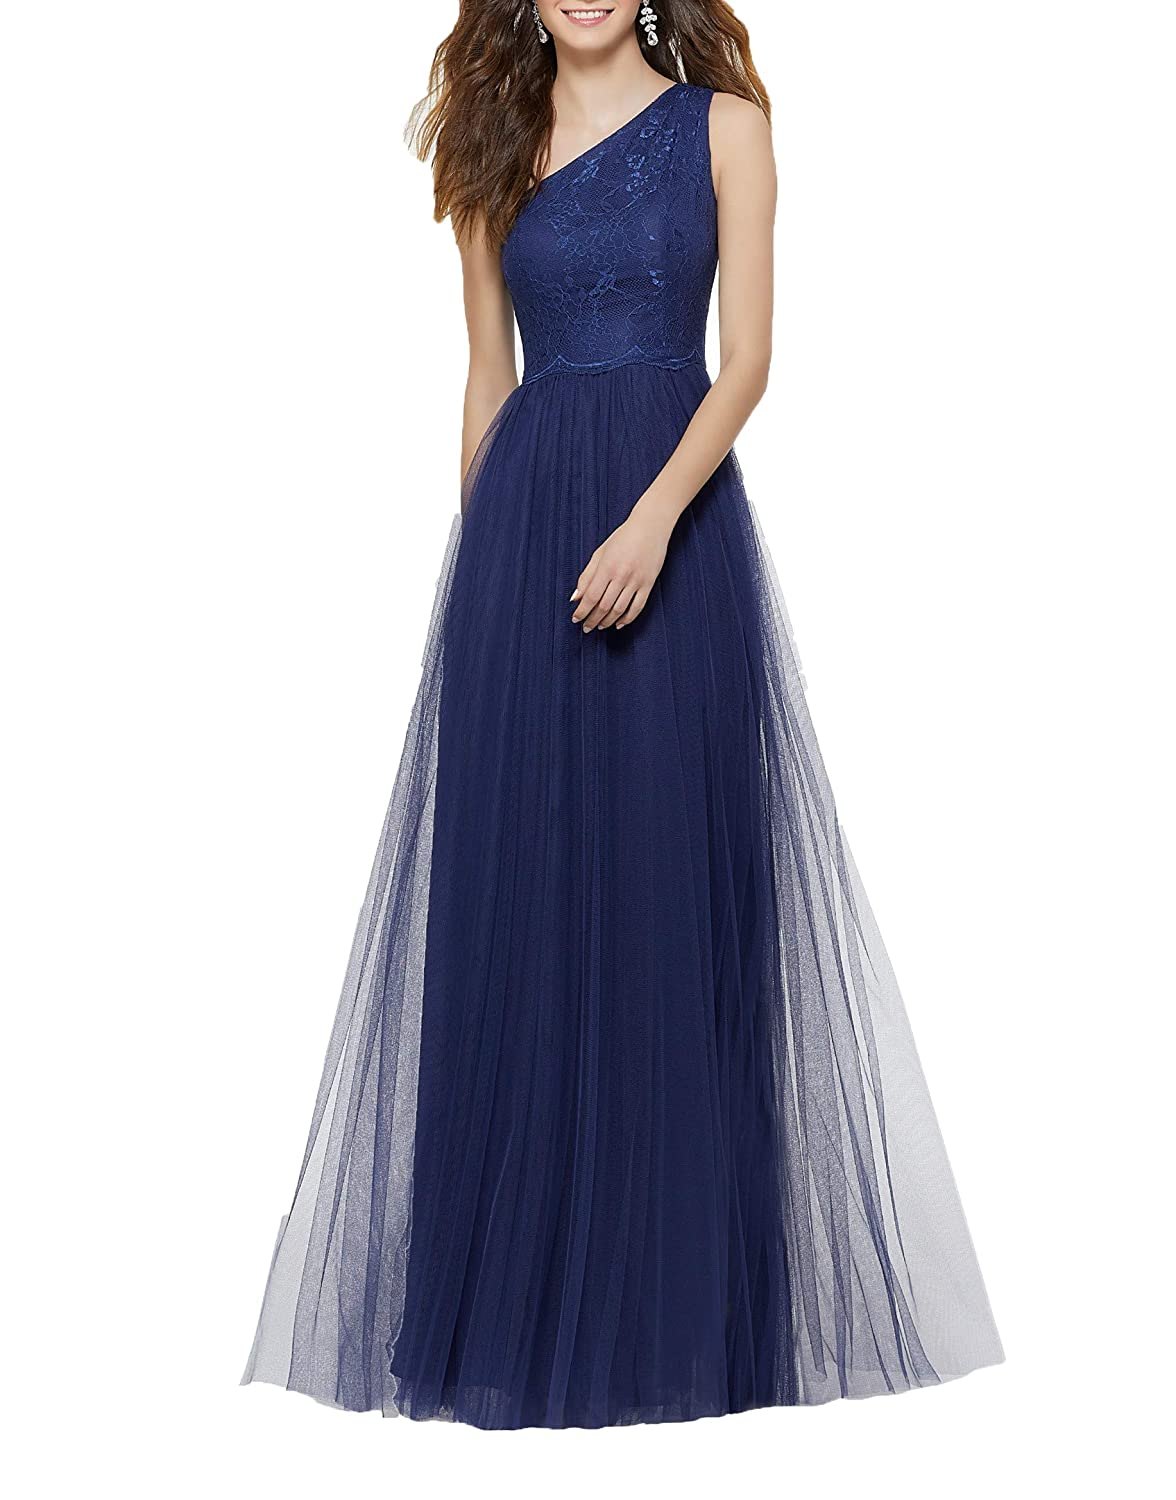 Navy bluee ANFF One Shoulder Lace Net Bodice Zipper Back Long Formal Evening Prom Gowns for Juniors